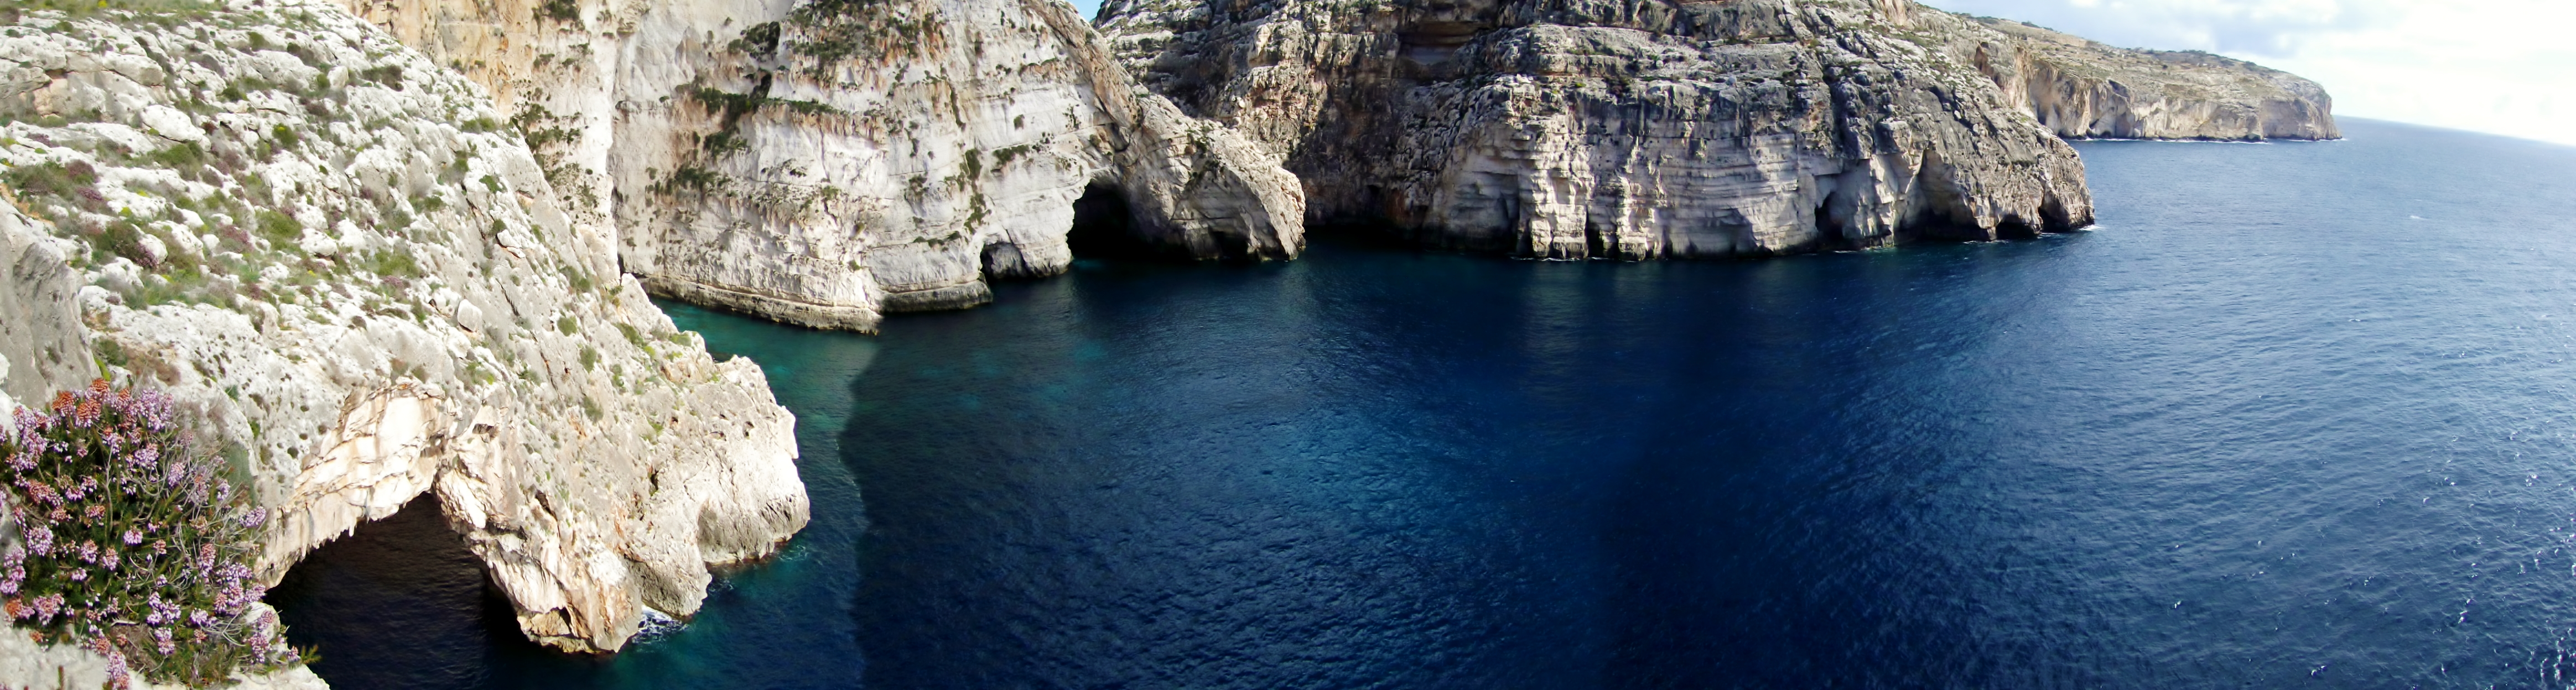 Blue_Grotto_Panoramic_View.JPG